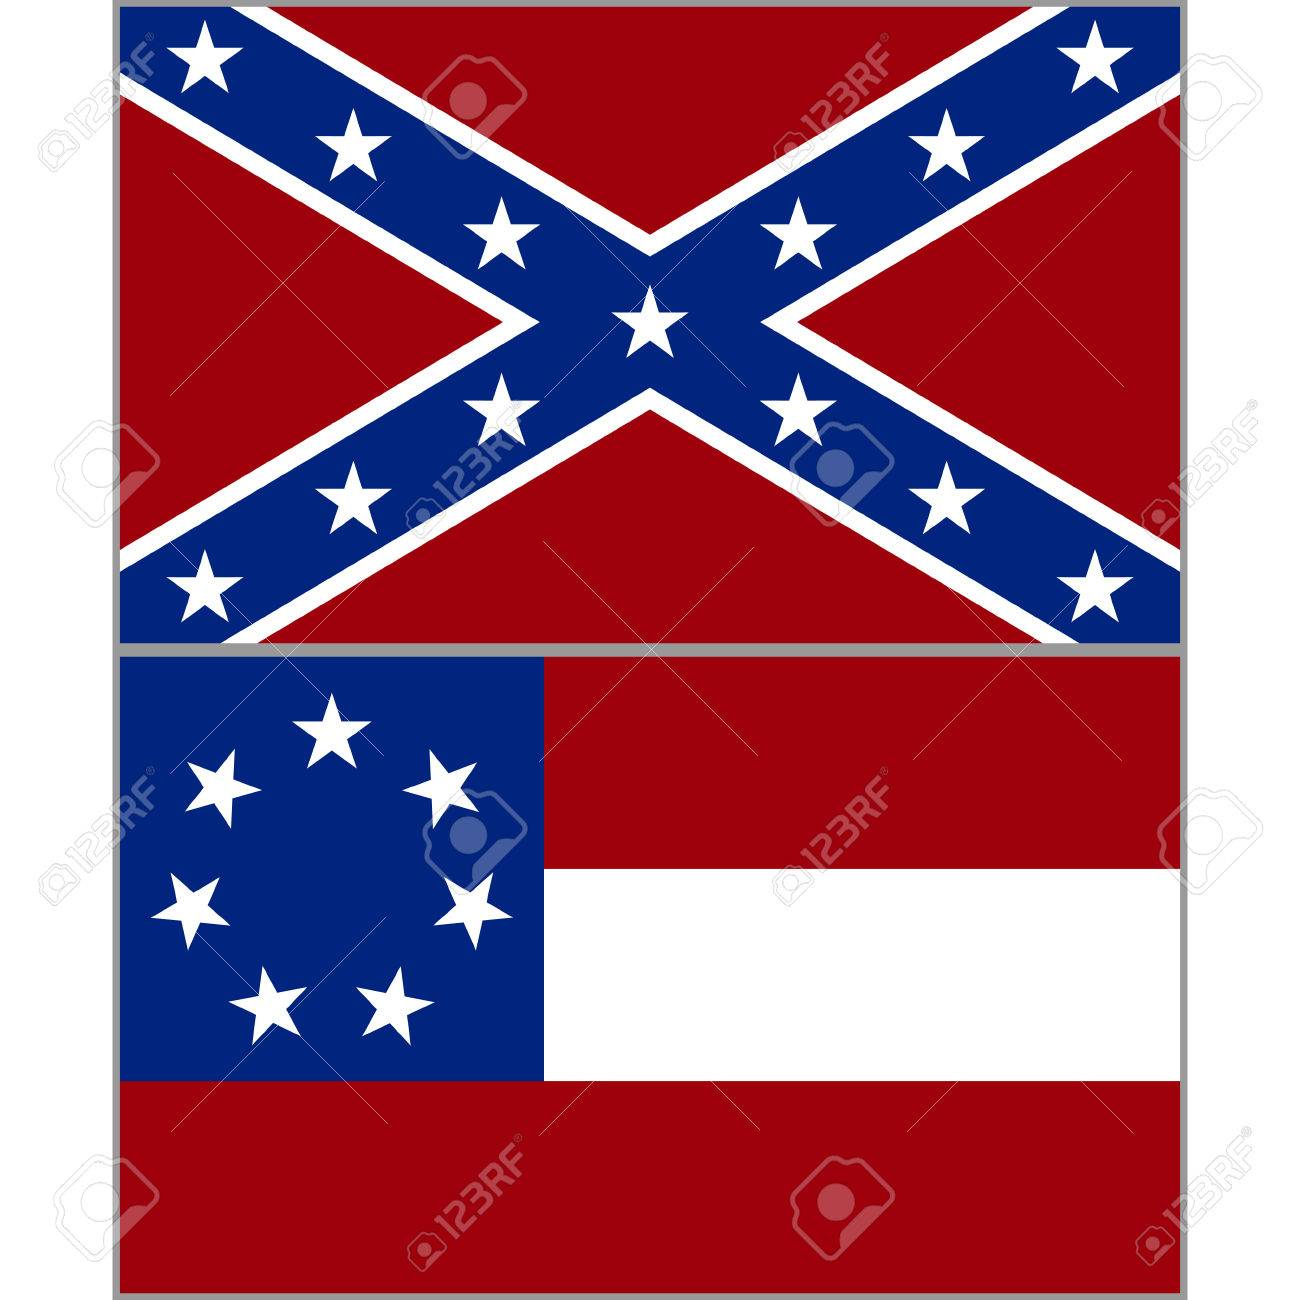 hight resolution of flags of the confederacy during the american civil war the illustration on a white background